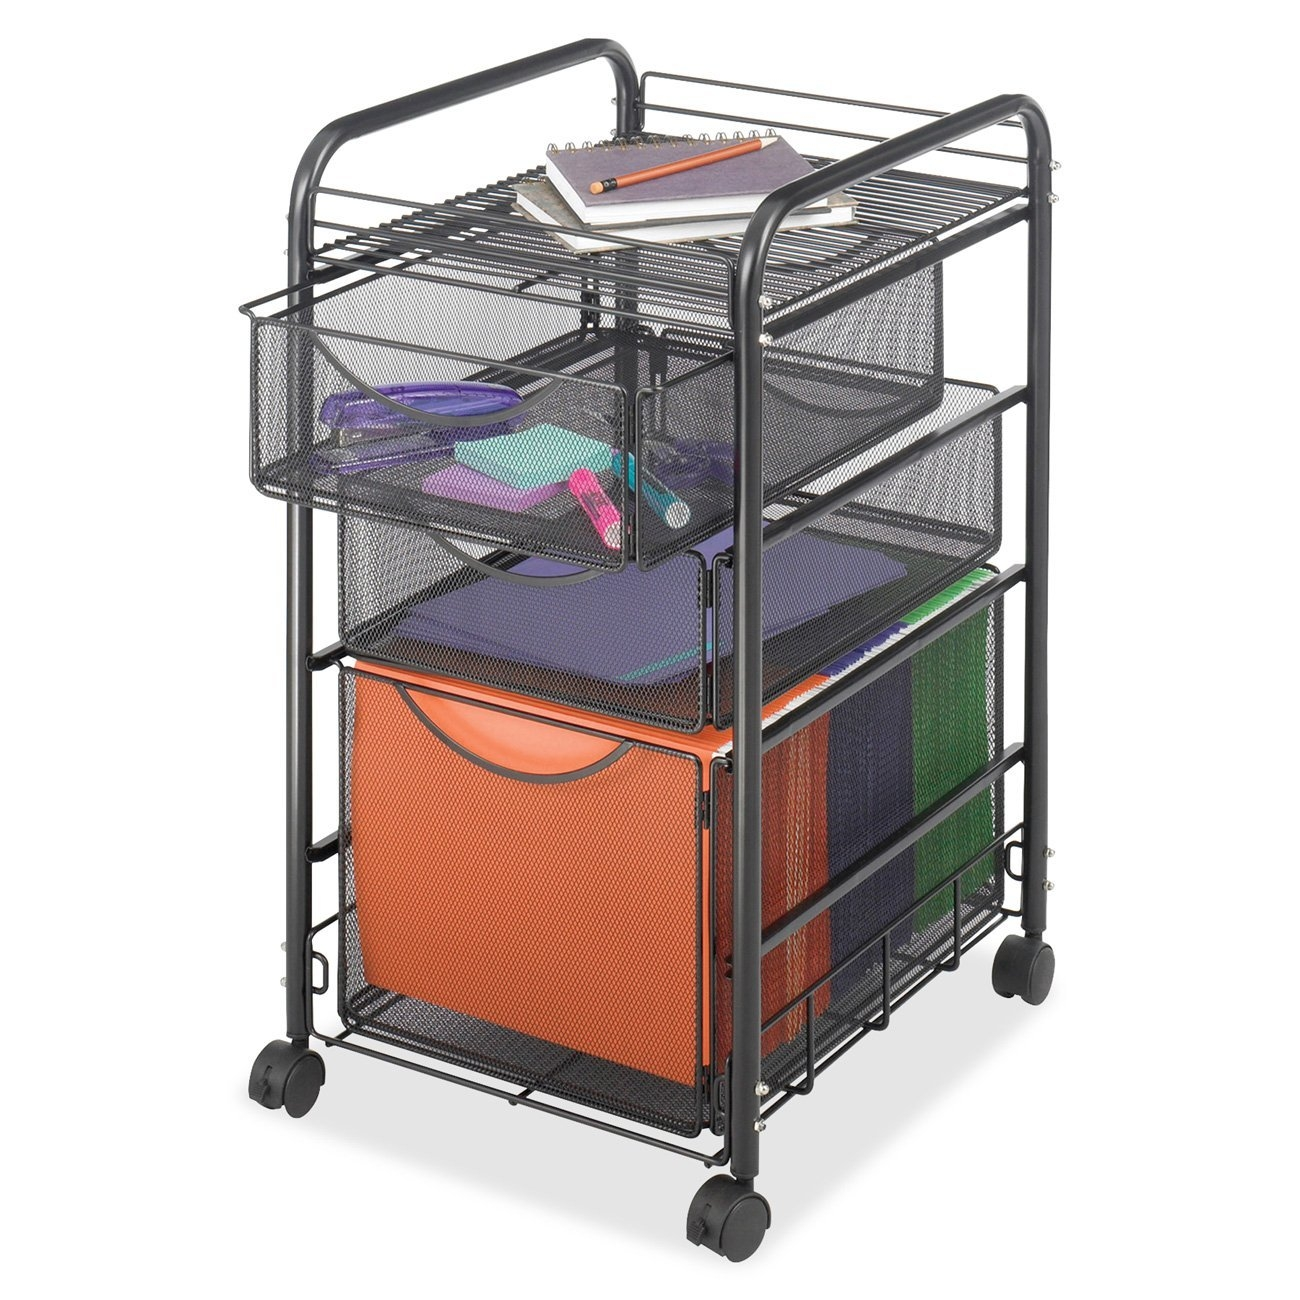 Black Metal Steel Mesh Mobile Filing Cabinet Cart With 2